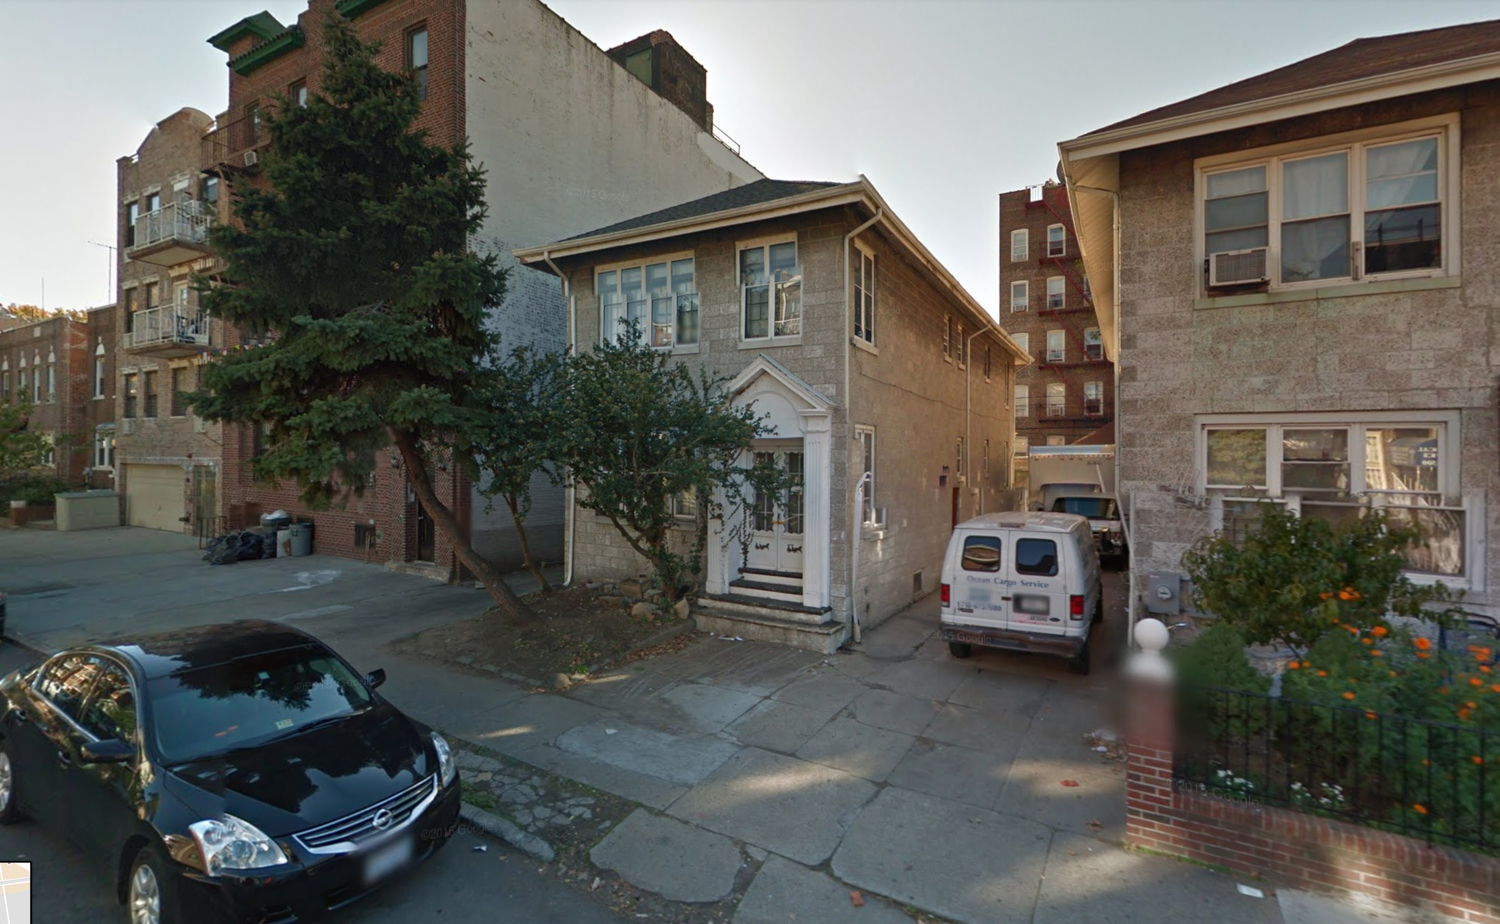 40-06 68th Street, via Google Maps